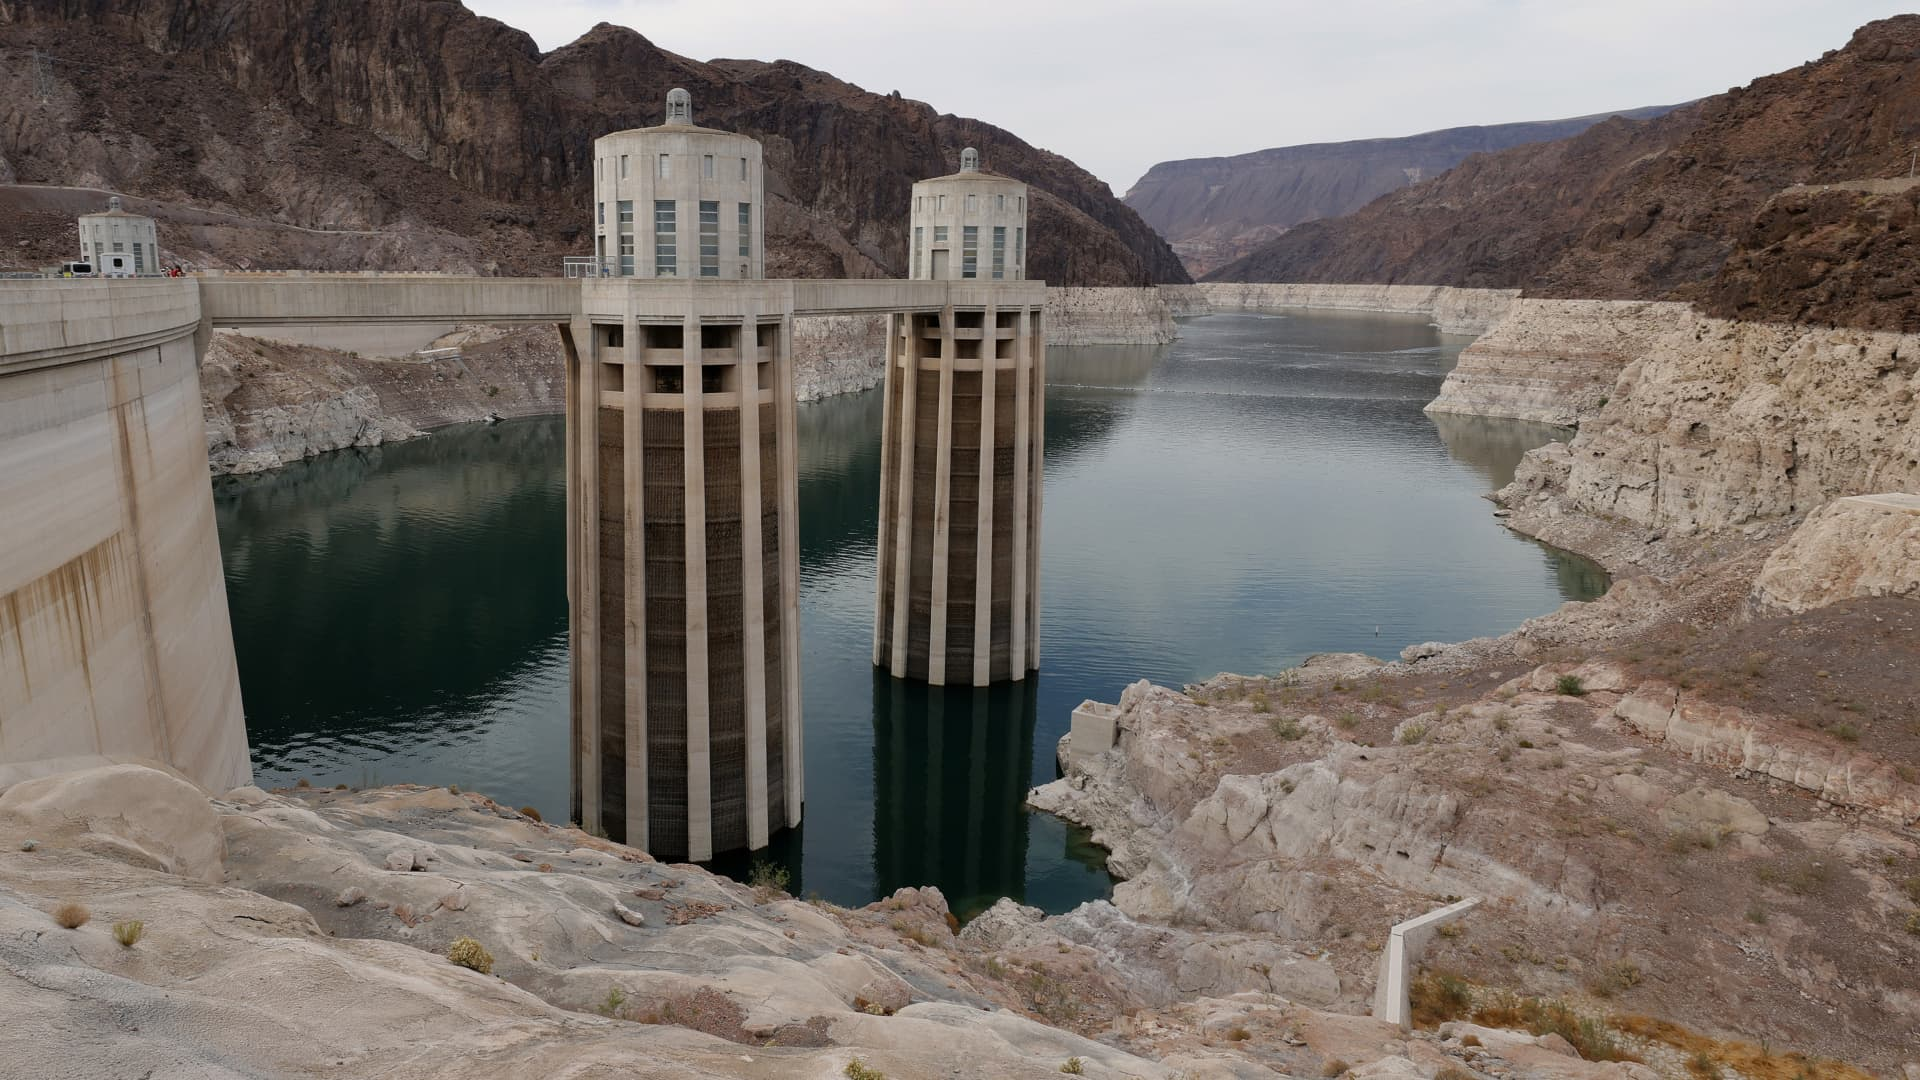 The two Arizona Intake Towers are shown at the Hoover Dam on June 15, 2021 in the Lake Mead National Recreation Area, Arizona.